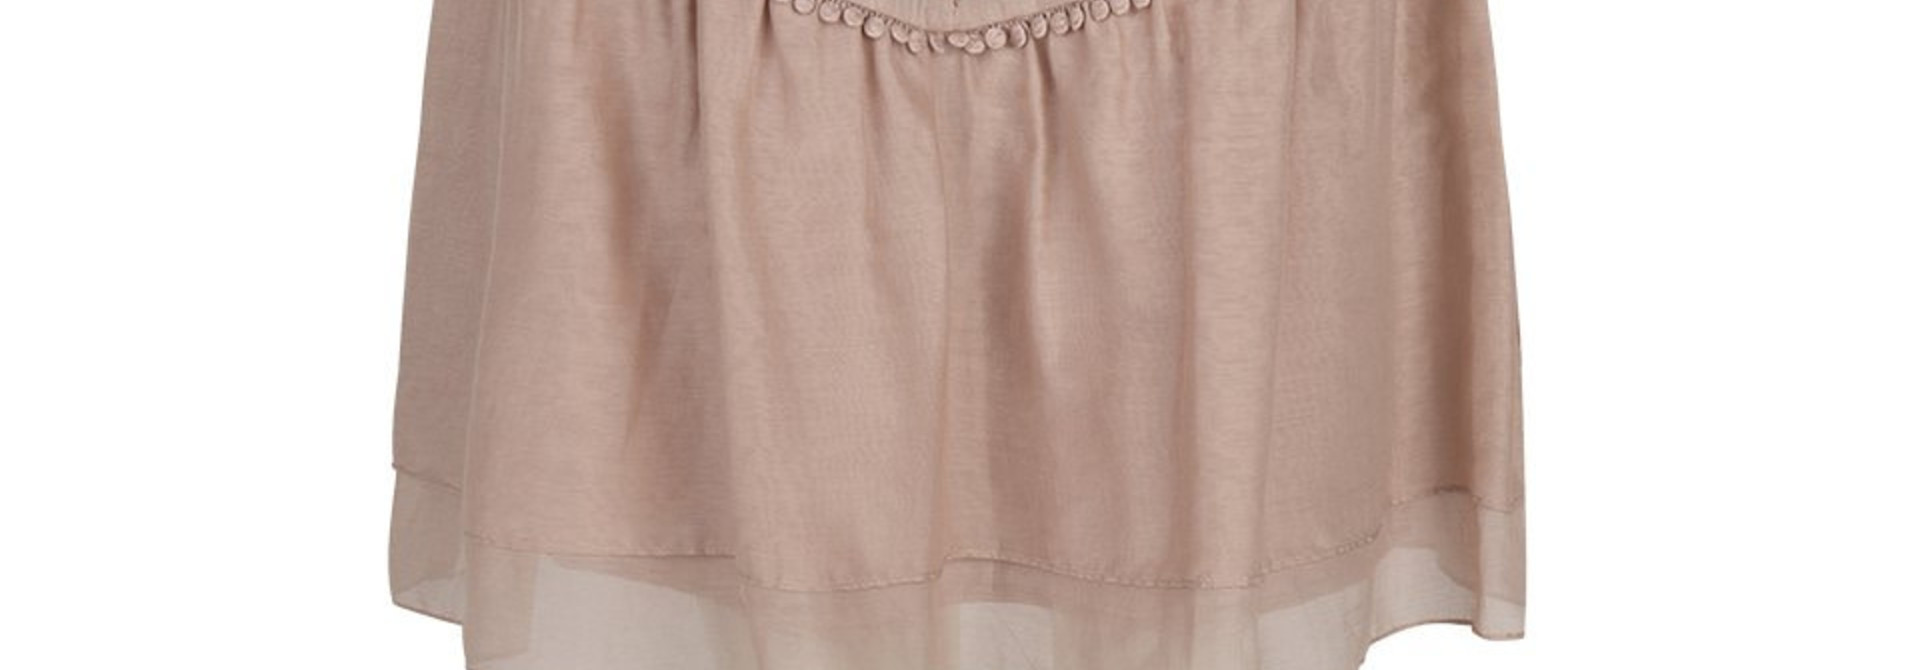 Loubi embroidery skirt oyster